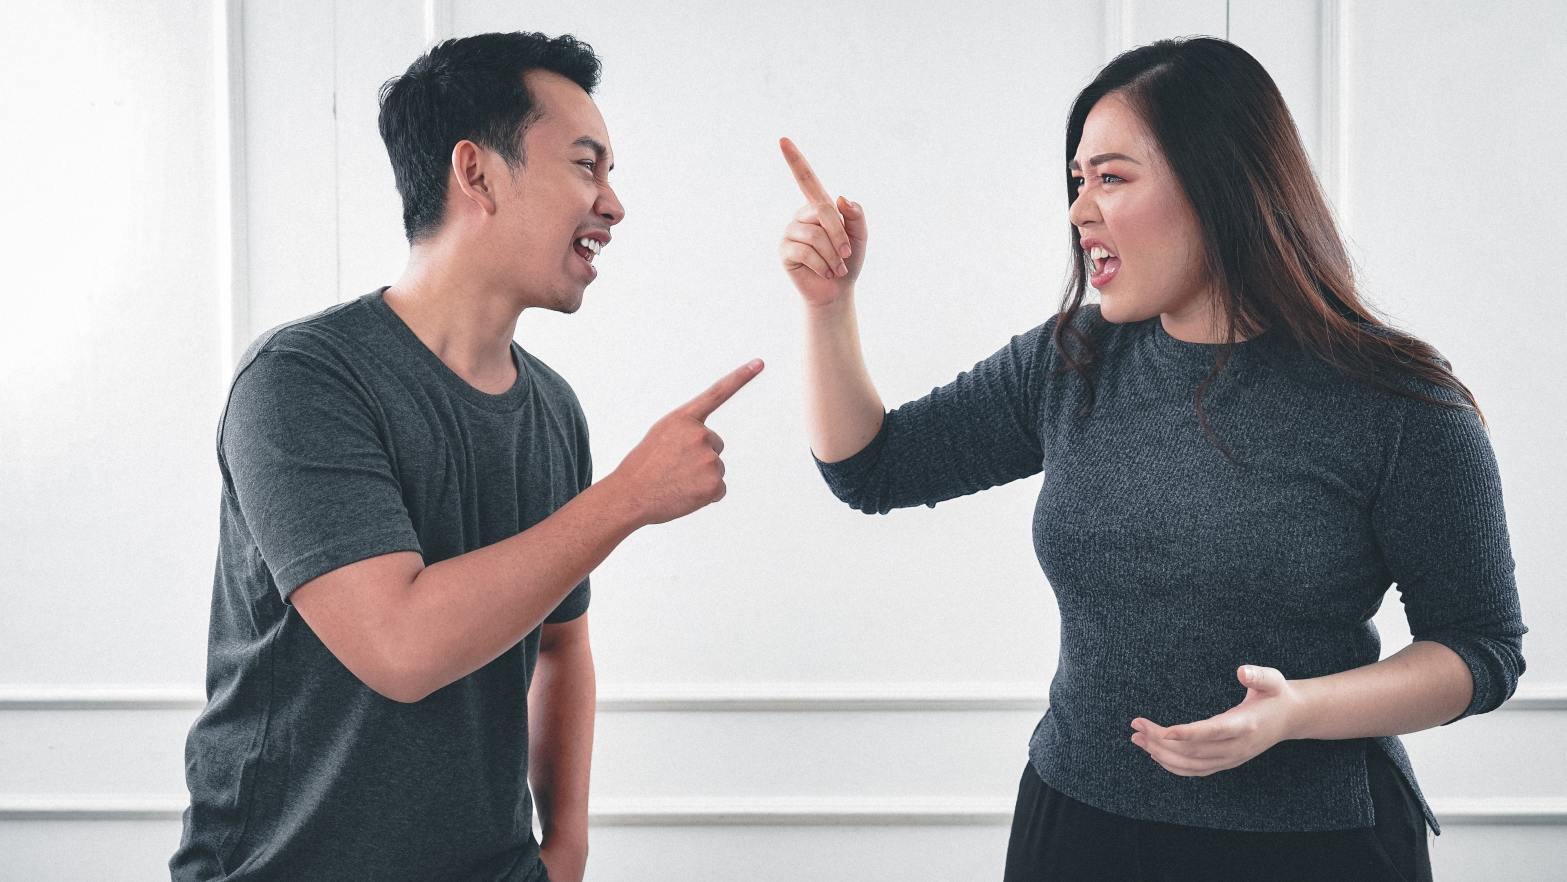 Couple arguing and pointing at each other –conflict in relationships.